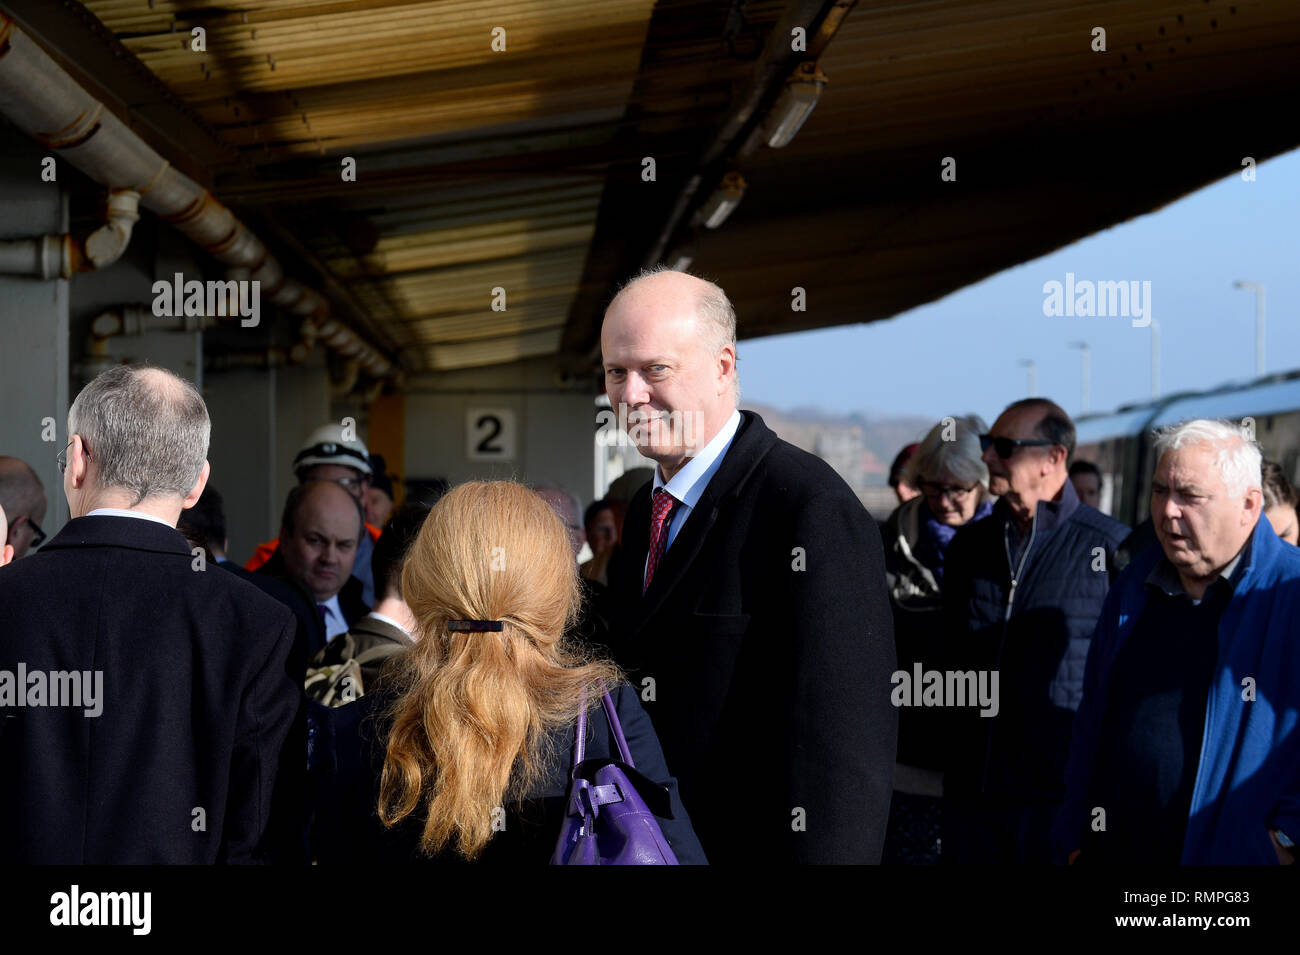 Dawlish, UK. 15th Feb, 2019. 15/02/2019  MP Chris Grayling visiting Dawlish. - Photo mandatory by-line: Andy Styles - Tel: 01626 872731 - Mobile: 07834214253 TQAS20190215B-004_C Credit: Andy Styles Photography/Alamy Live News - Stock Image